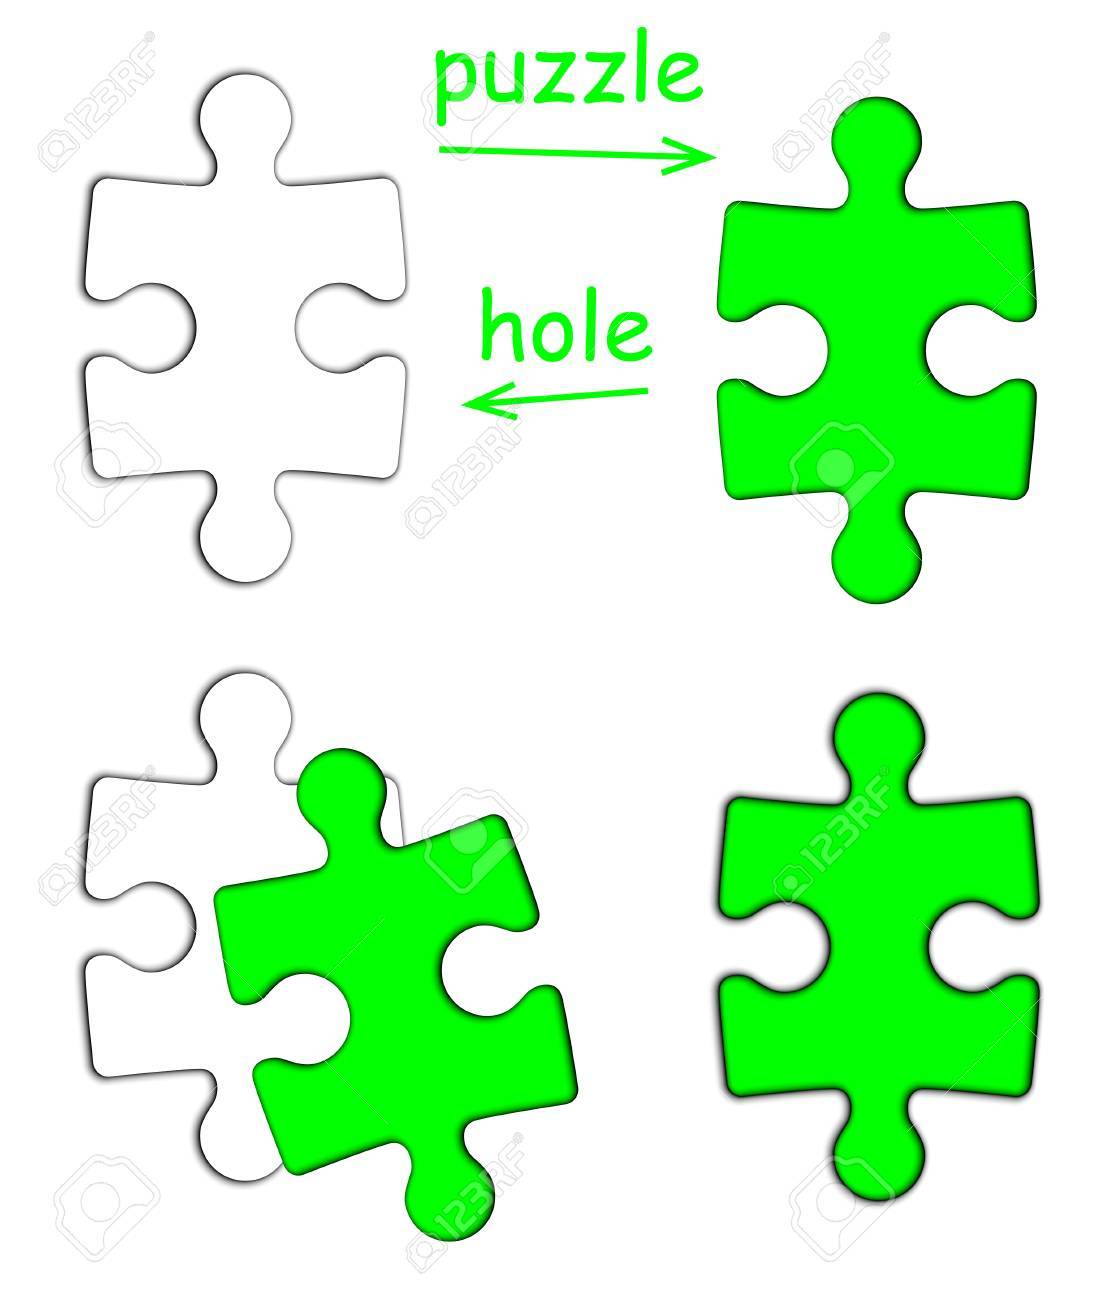 Puzzle piece and puzzle hole isolated on white background Stock Photo - 20103003